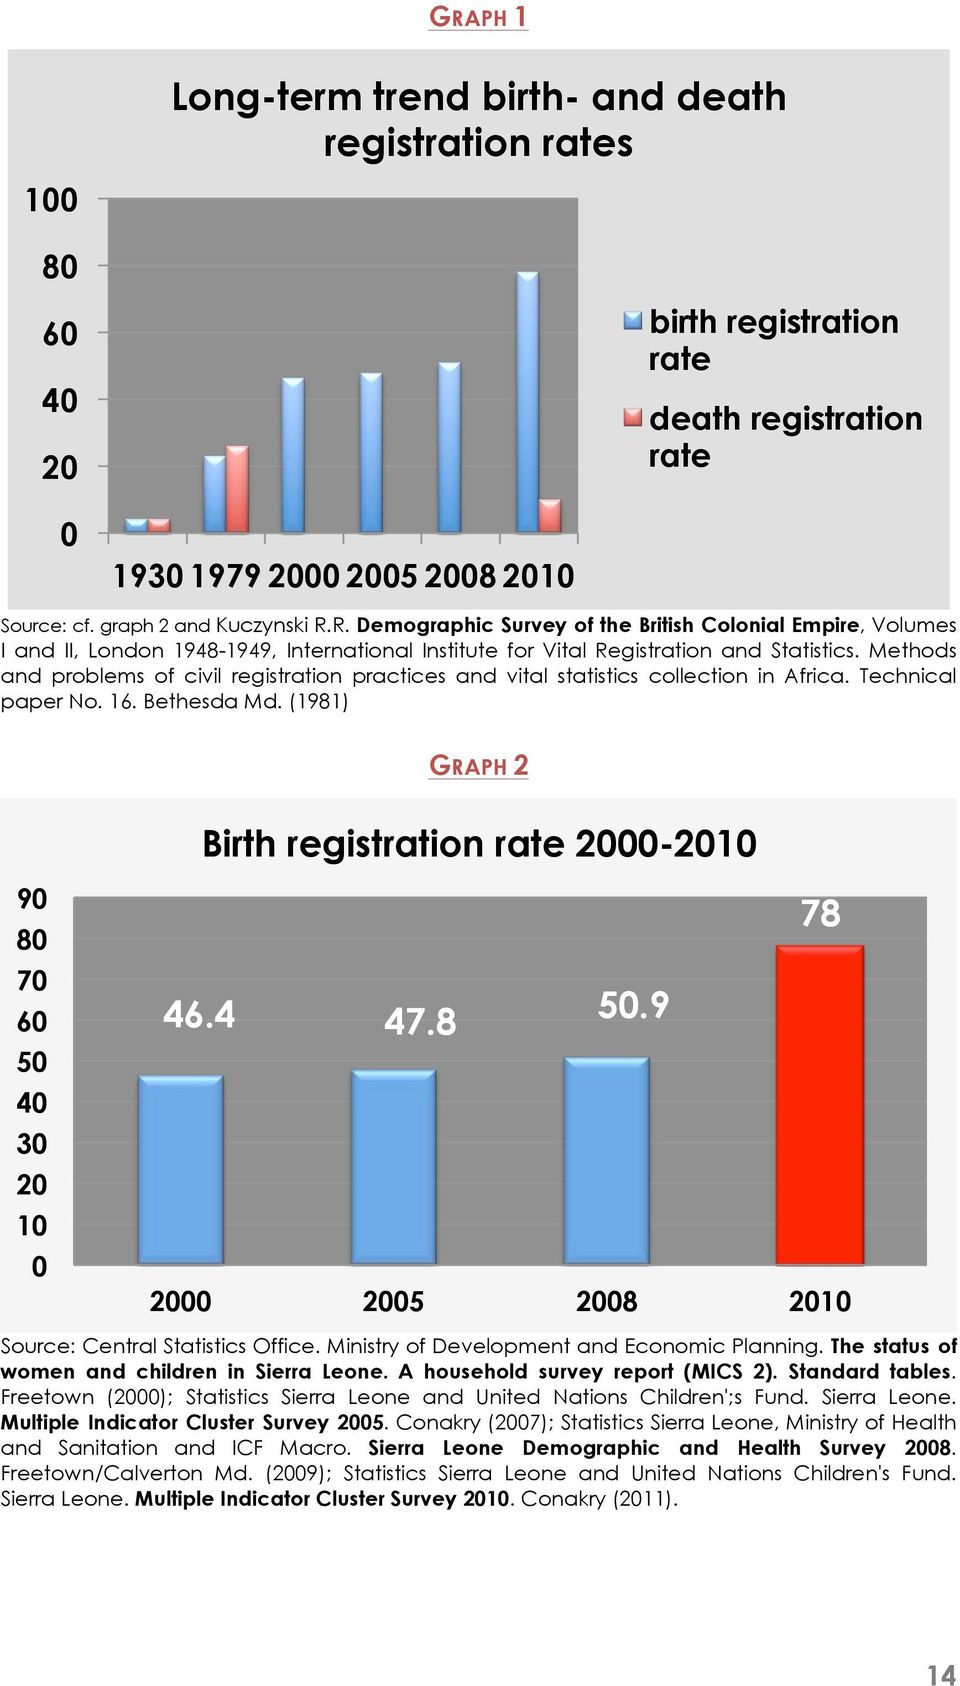 (1981) GRAPH 2 Birth registration rate 2000-2010 90 80 70 60 50 40 30 20 10 0 78 46.4 47.8 50.9 2000 2005 2008 2010 Source: Central Statistics Office. Ministry of Development and Economic Planning.